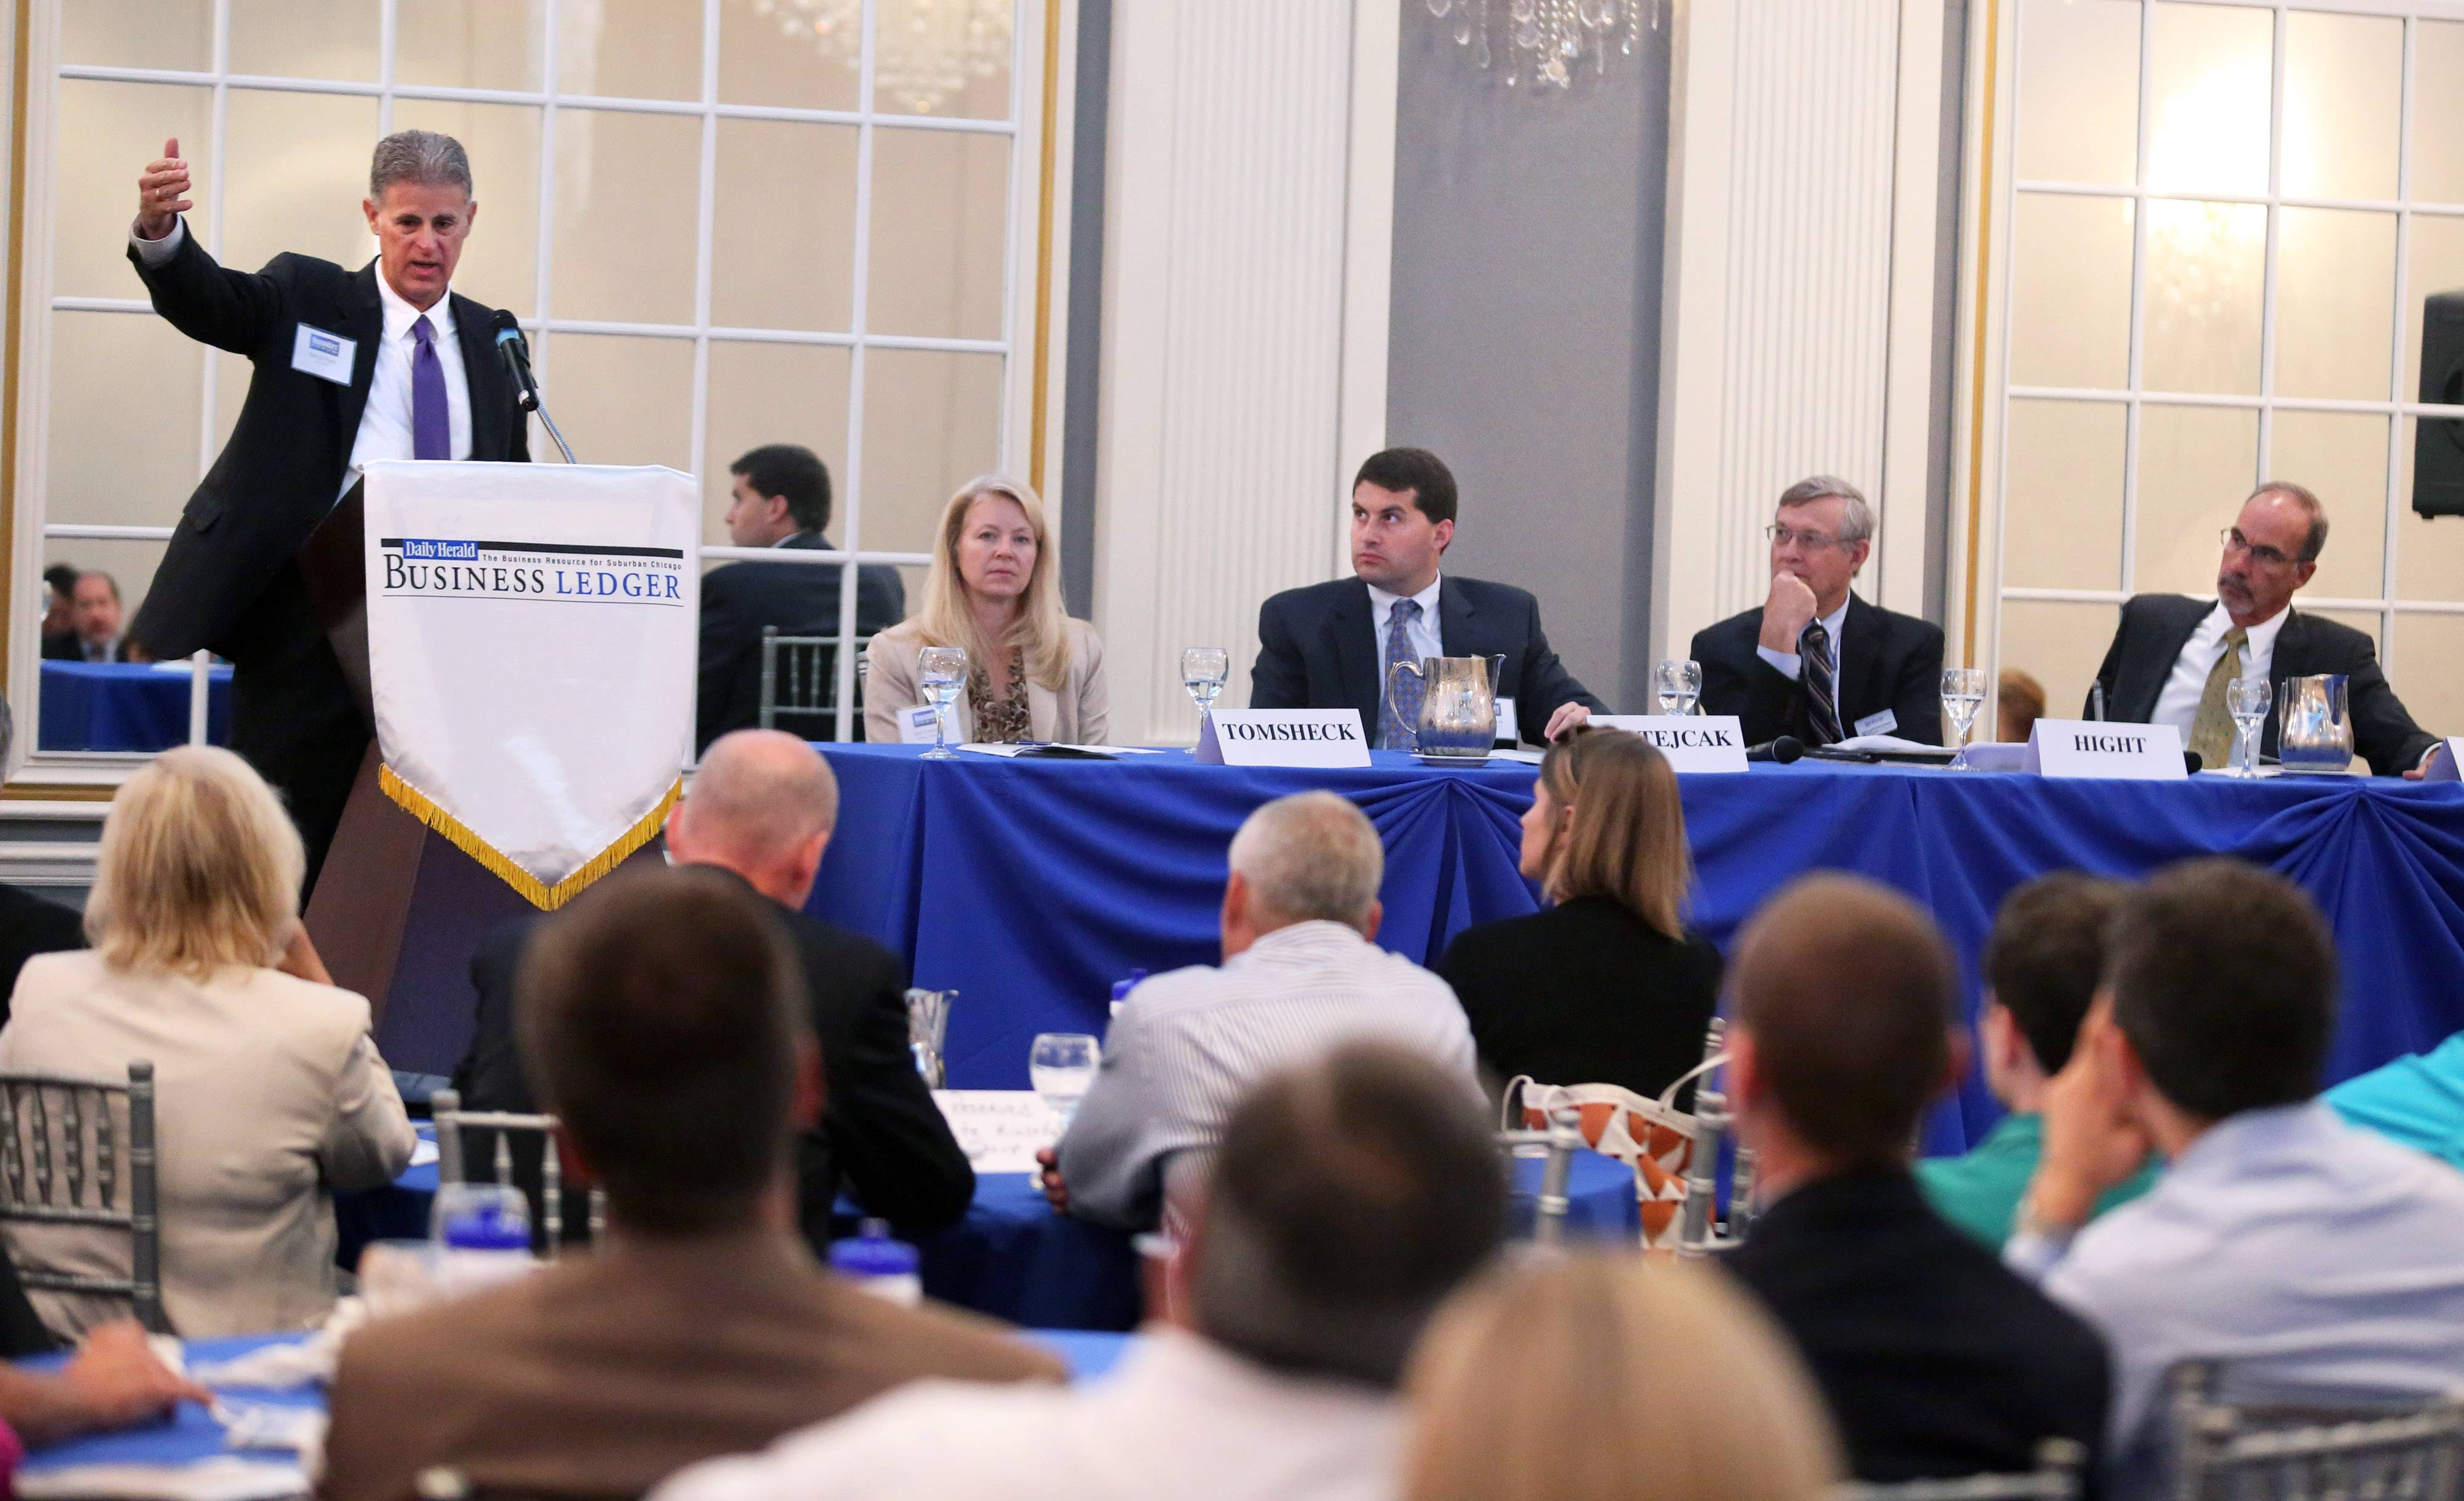 David Hight, partner at the law firm Ice Miller LLP, speaks at the Daily Herald Business Ledger Newsmakers' Forum on Family Business Thursday at European Crystal Banquets in Arlington Heights.